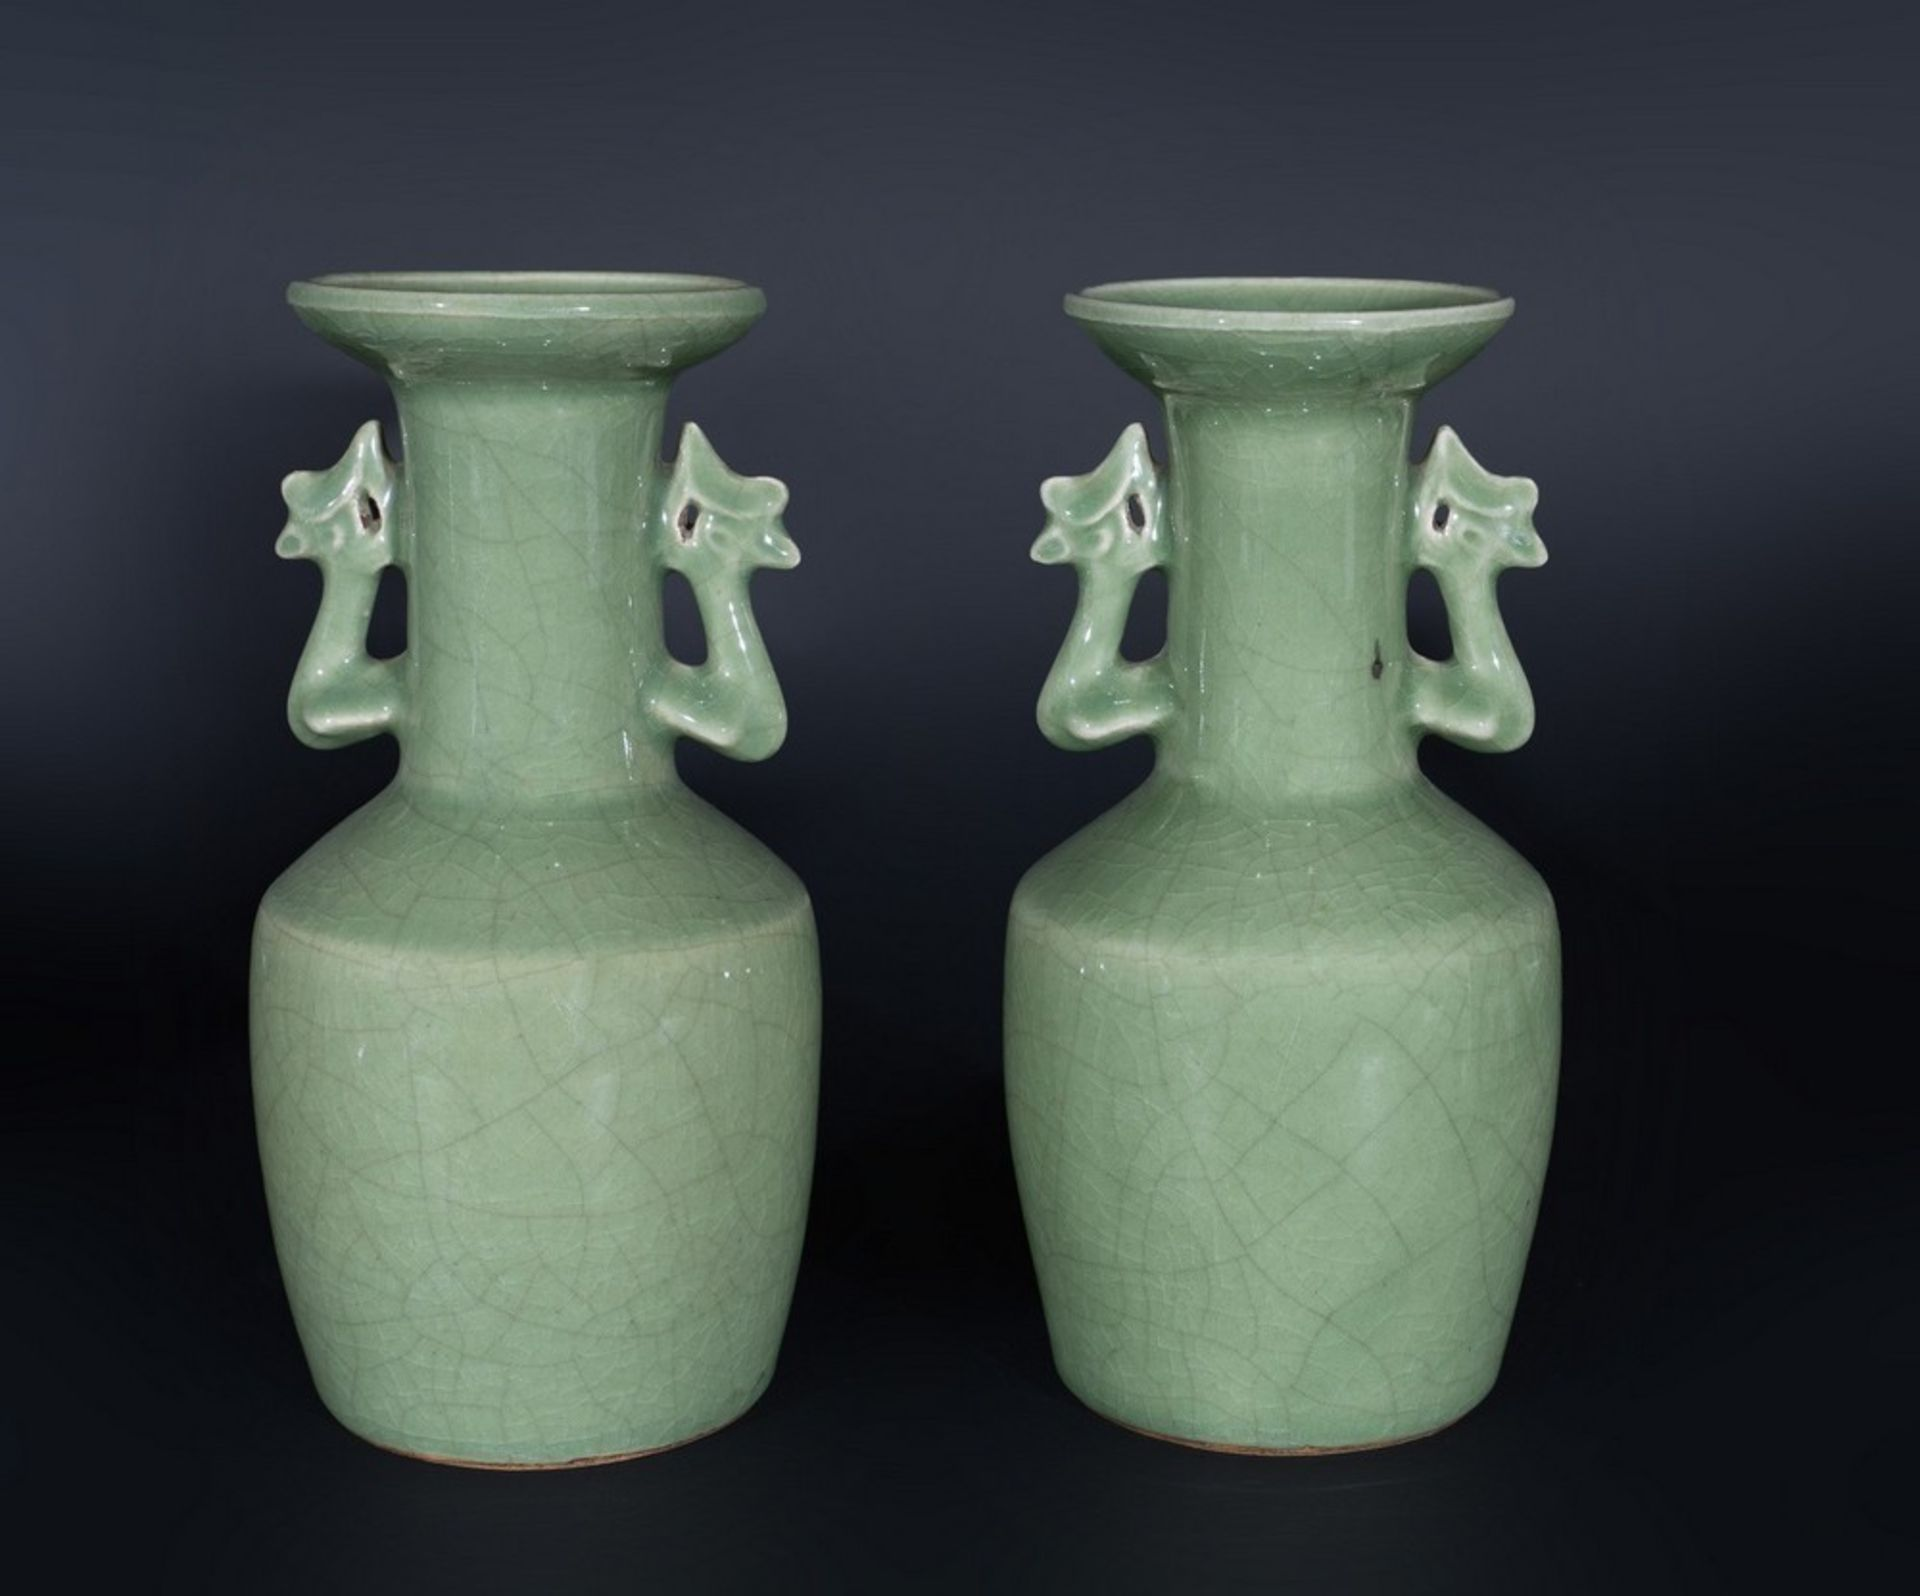 Arte Cinese A pair of celadon glazed pottery vases with zoomorphic handles China, Qing dynasty, 19t